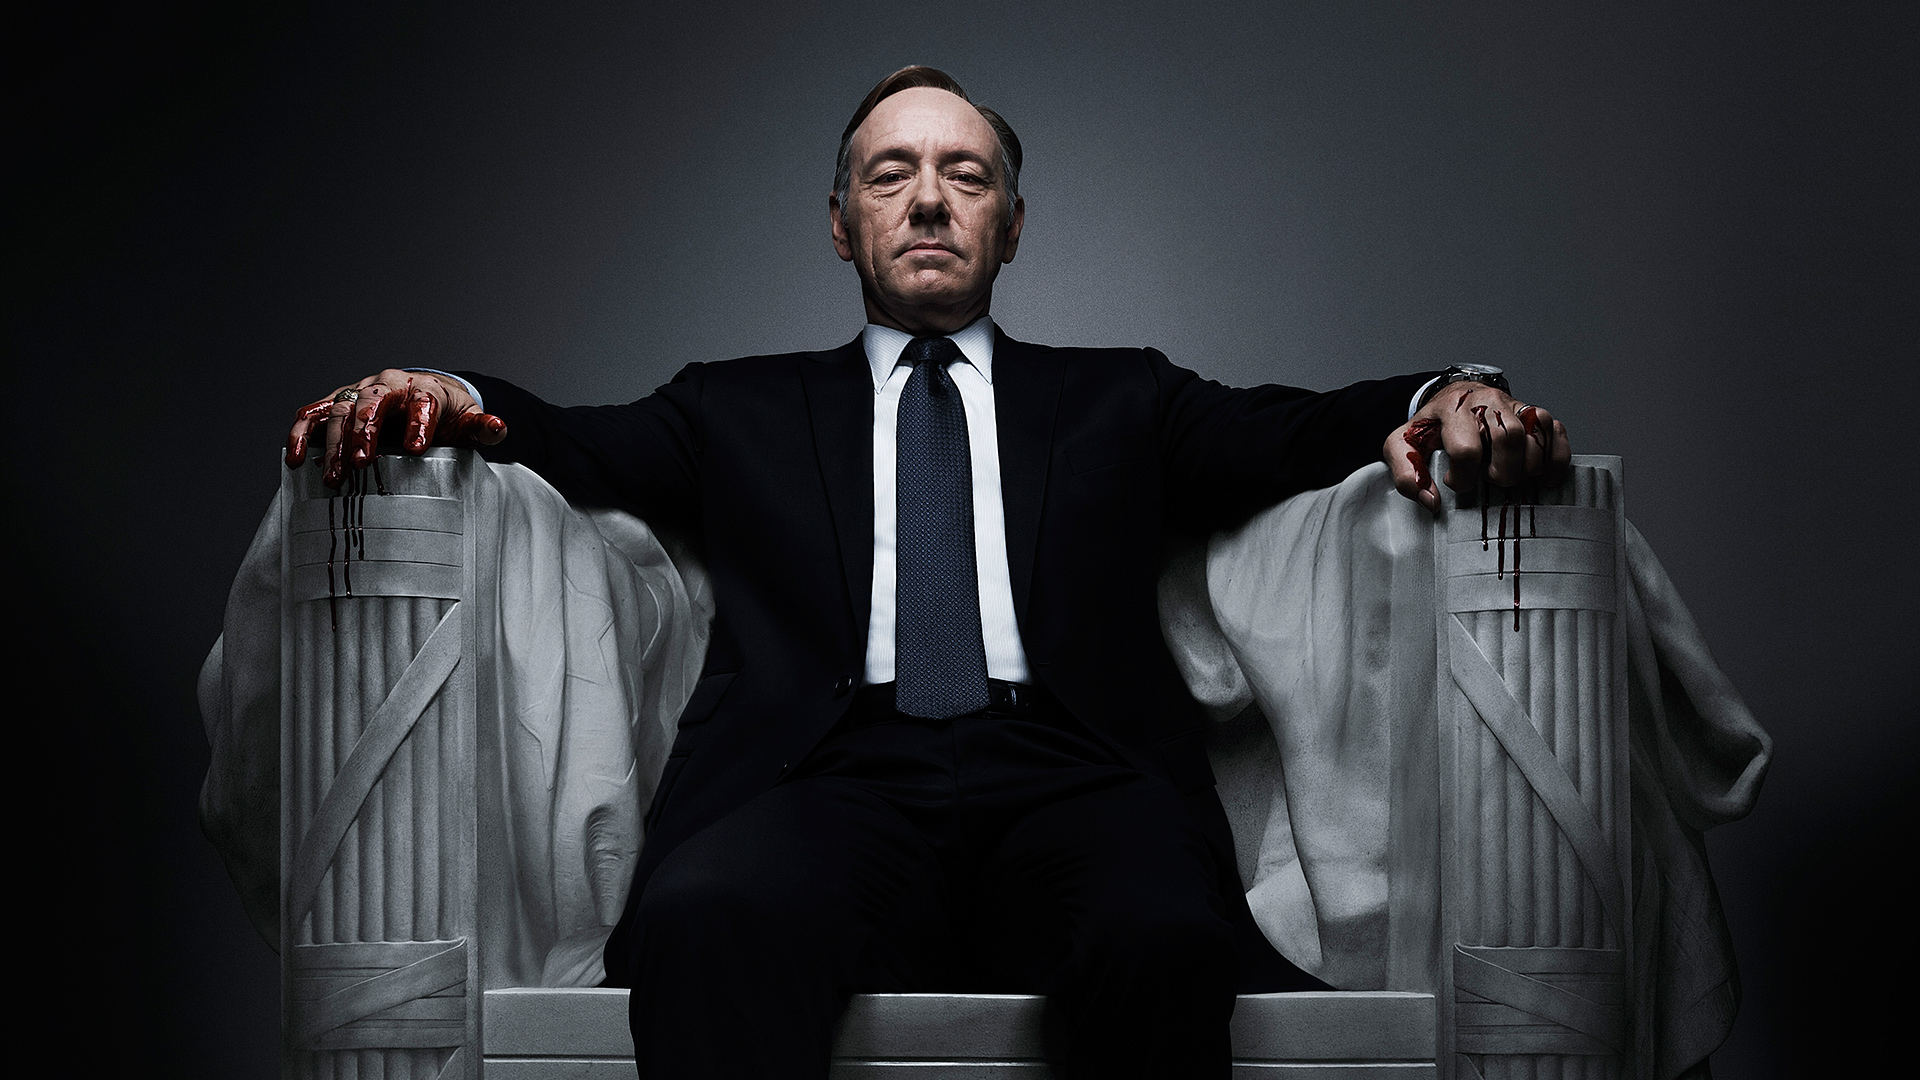 El interesante adelanto de la quinta temporada de House of Cards